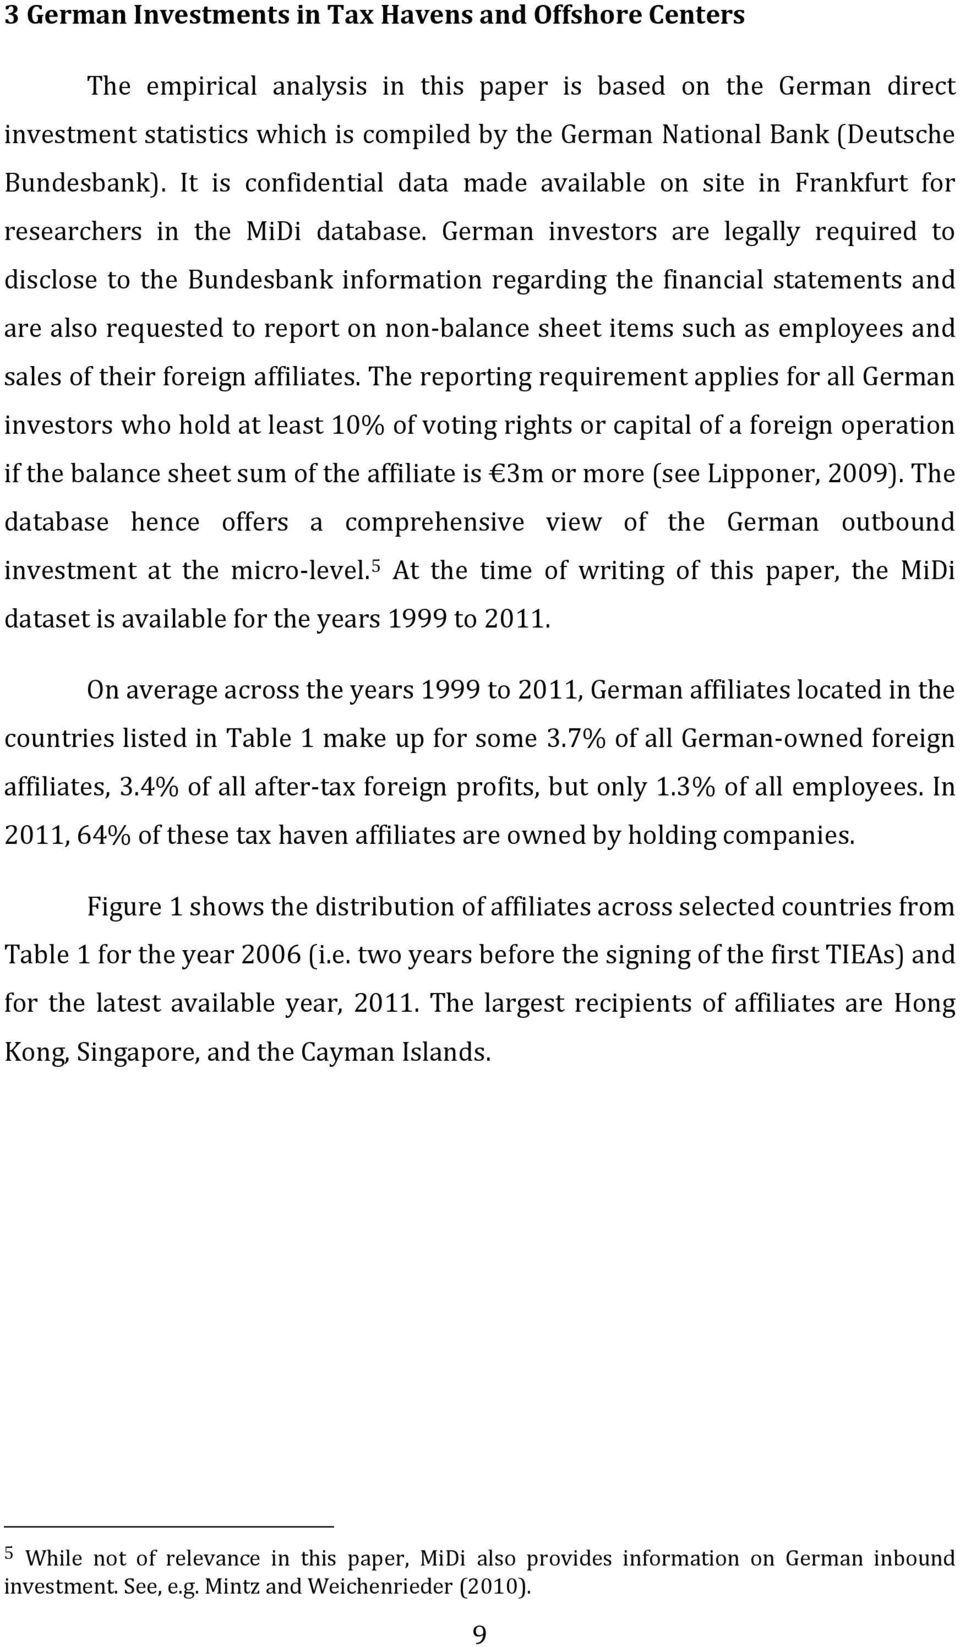 German investors are legally required to disclose to the Bundesbank information regarding the financial statements and are also requested to report on non-balance sheet items such as employees and